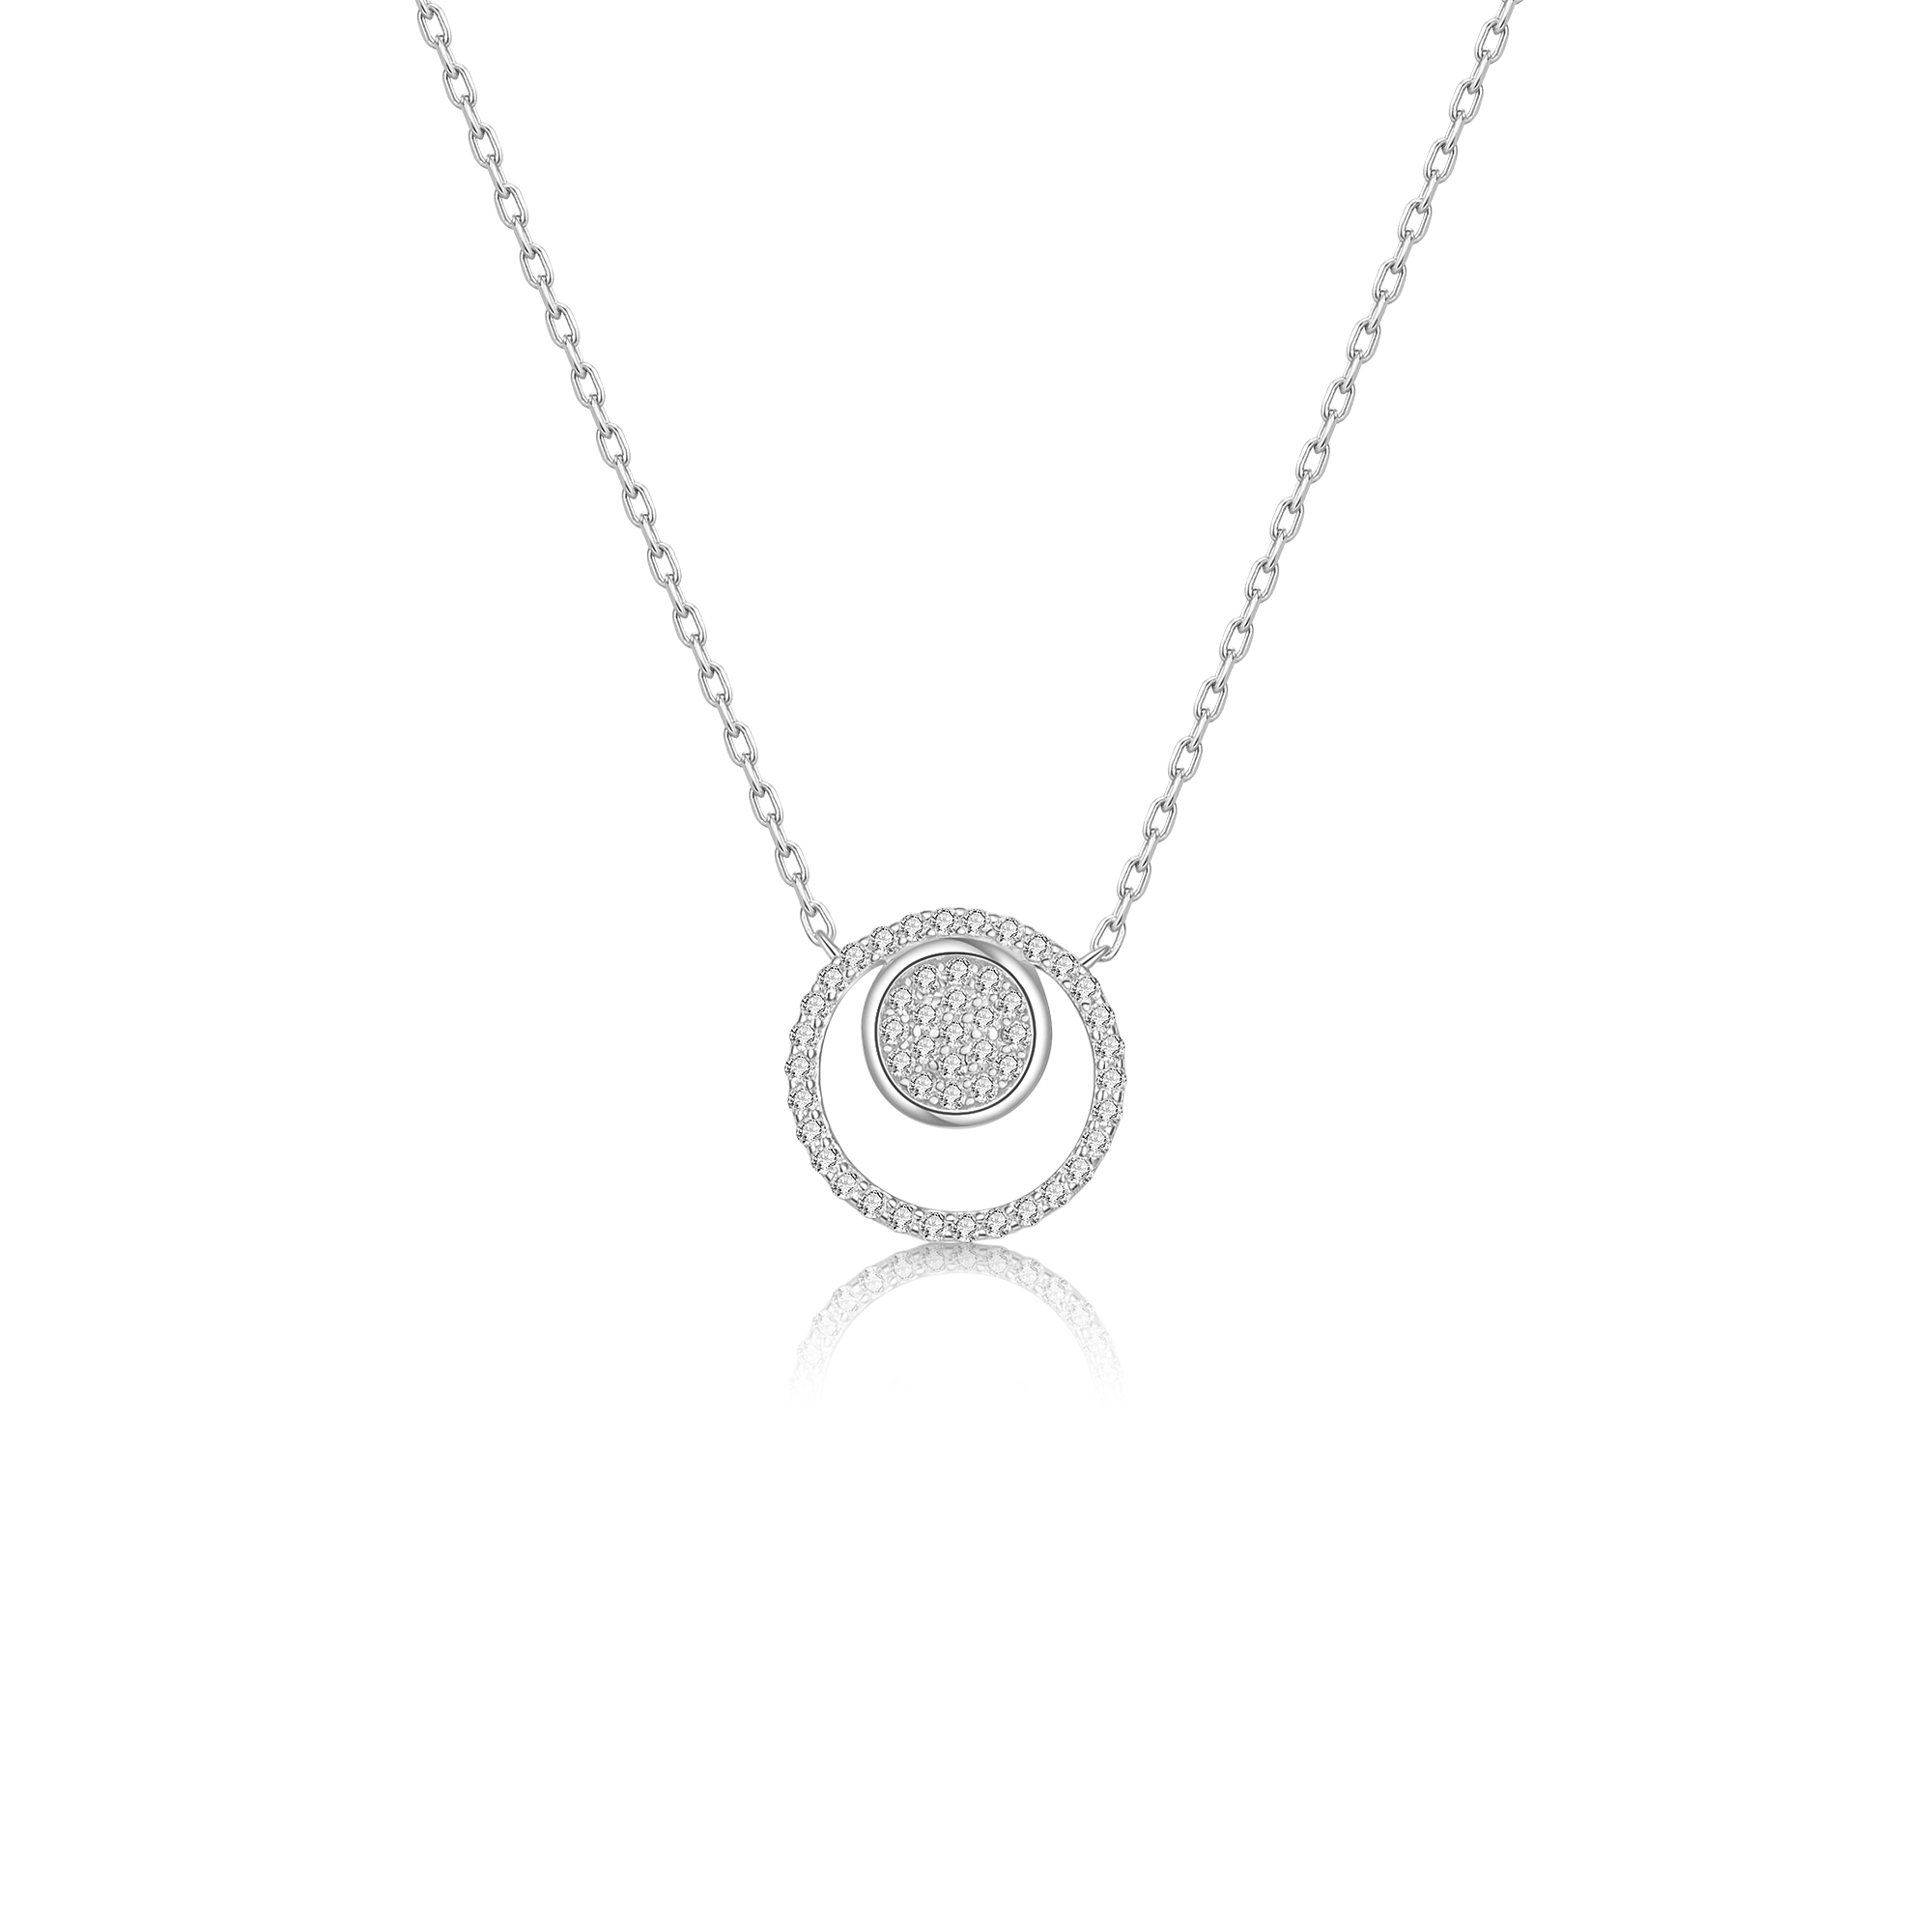 2020 Fashion 925 Sterling Silver Double Round Necklace Womens Pendant Necklaces Trendy Female Party Girl Jewelry(China)